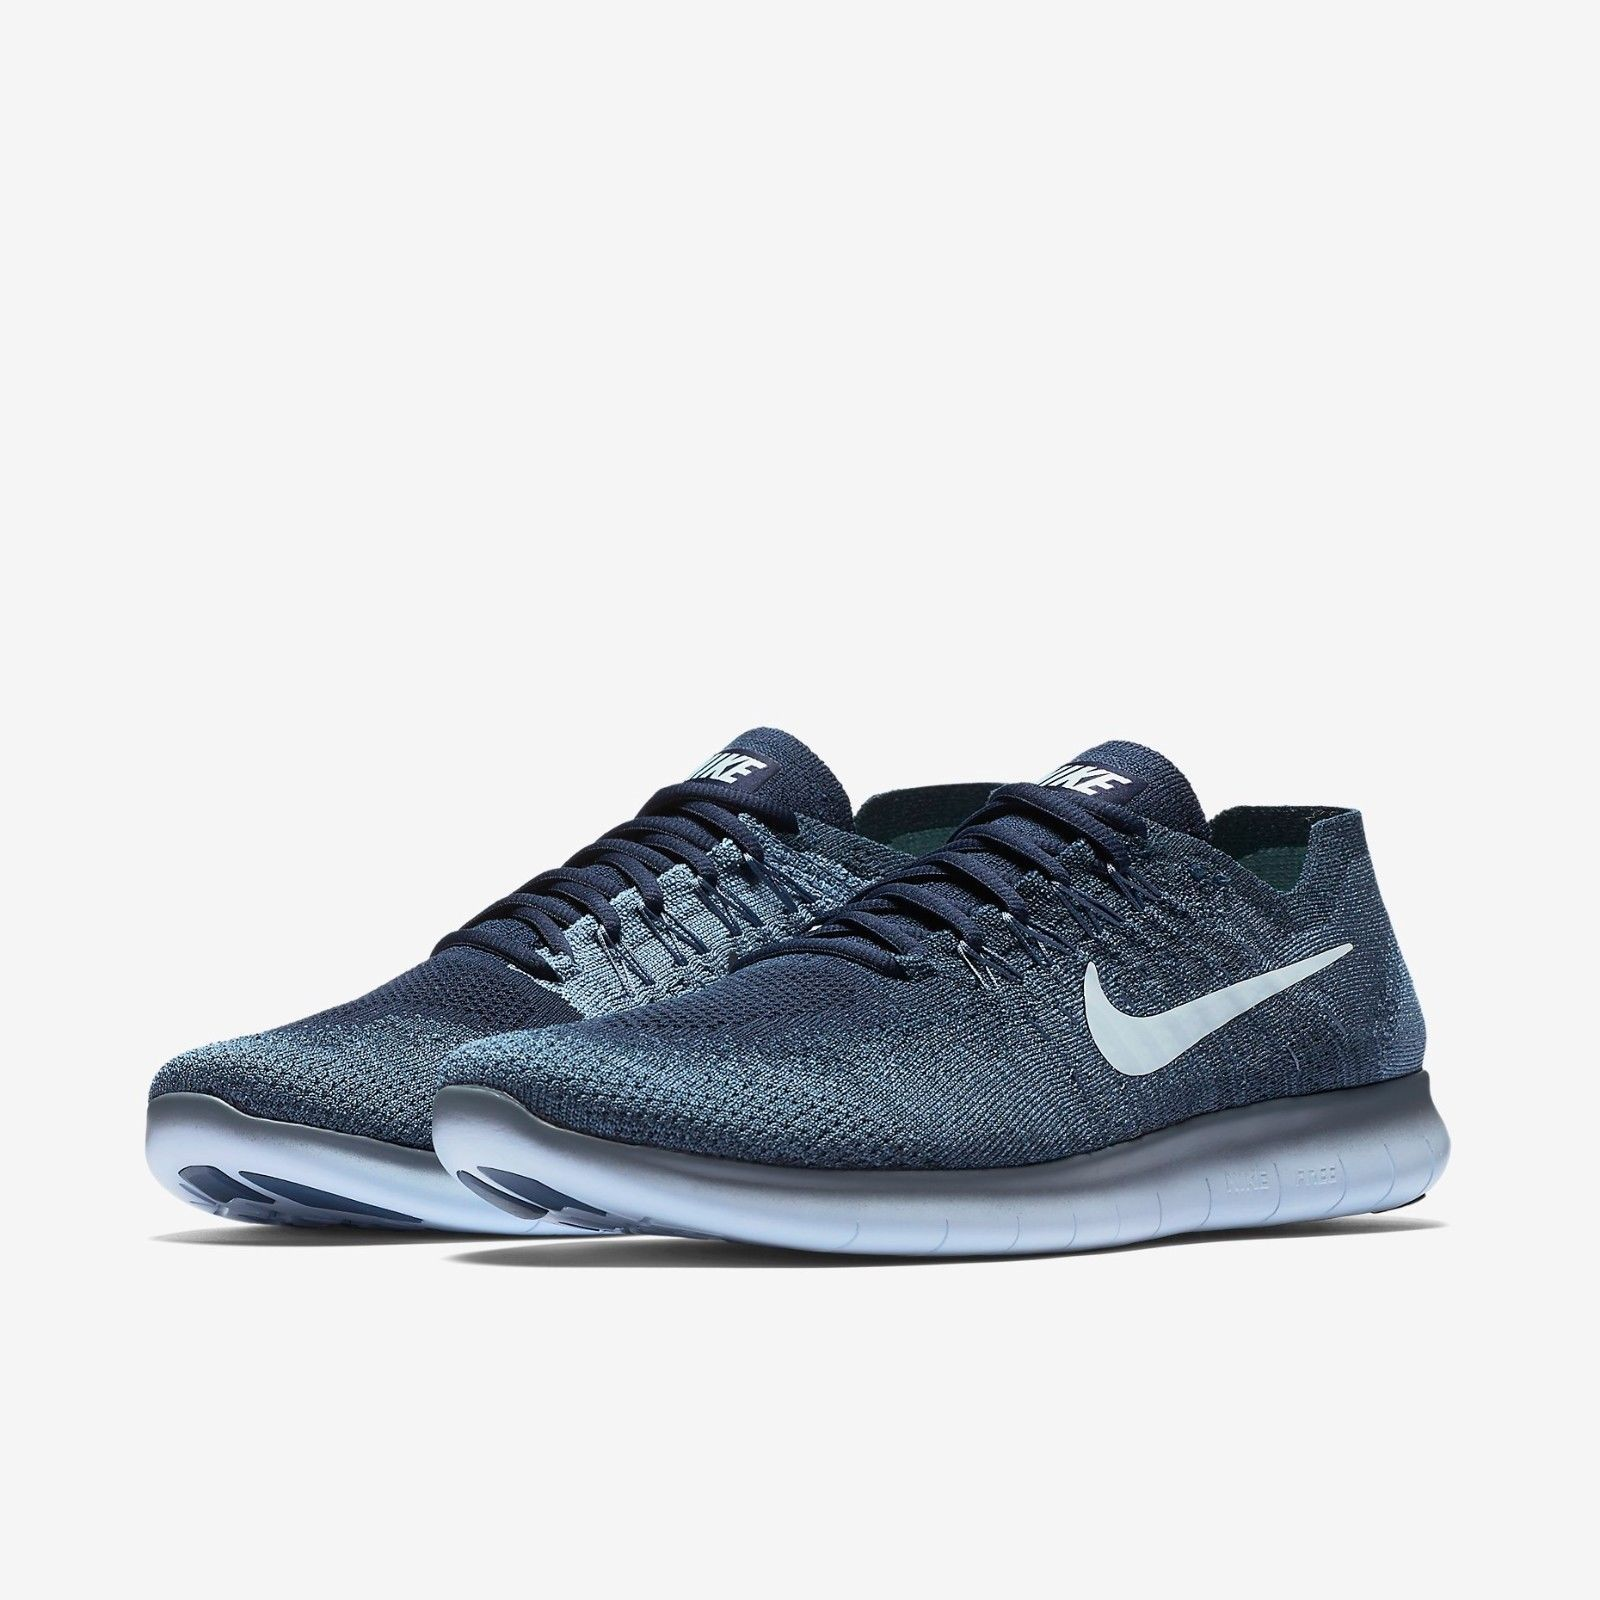 separation shoes 2d554 f1f34 Men's New Authentic Nike Free RN Flyknit and 50 similar items. 57